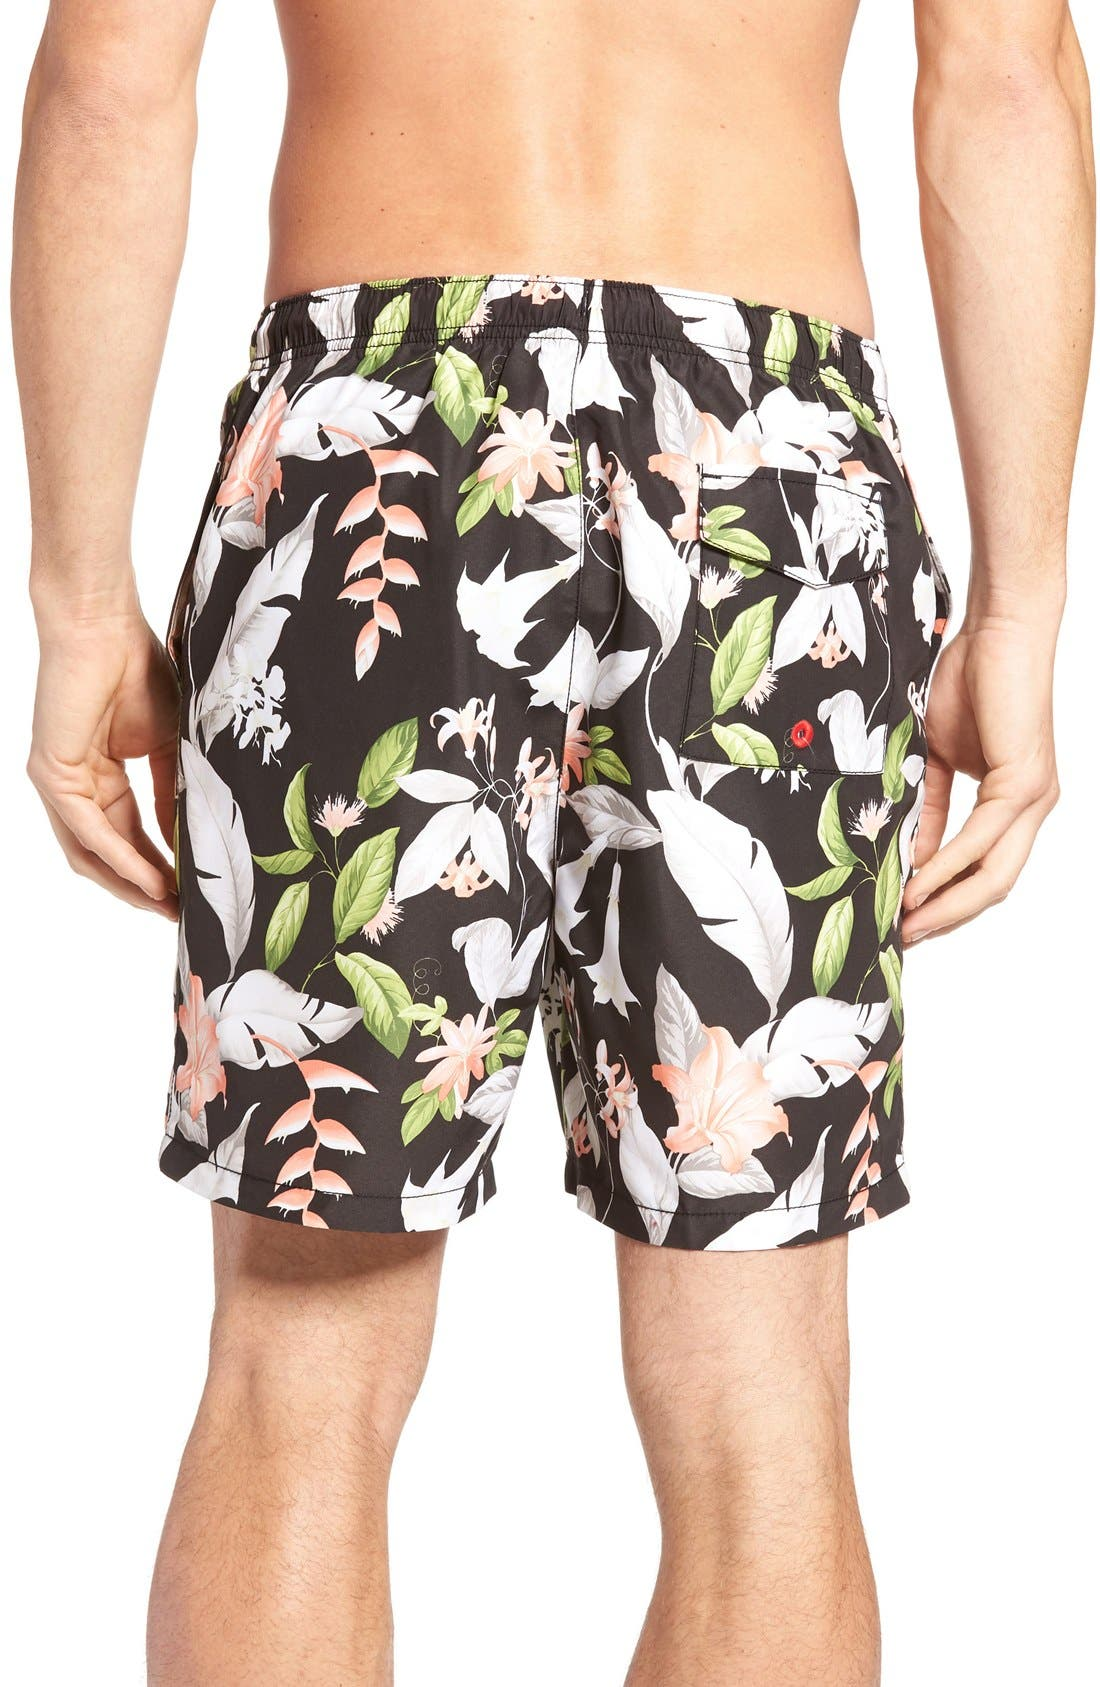 Naples Brego Blooms Swim Trunks,                             Alternate thumbnail 2, color,                             Jet Black